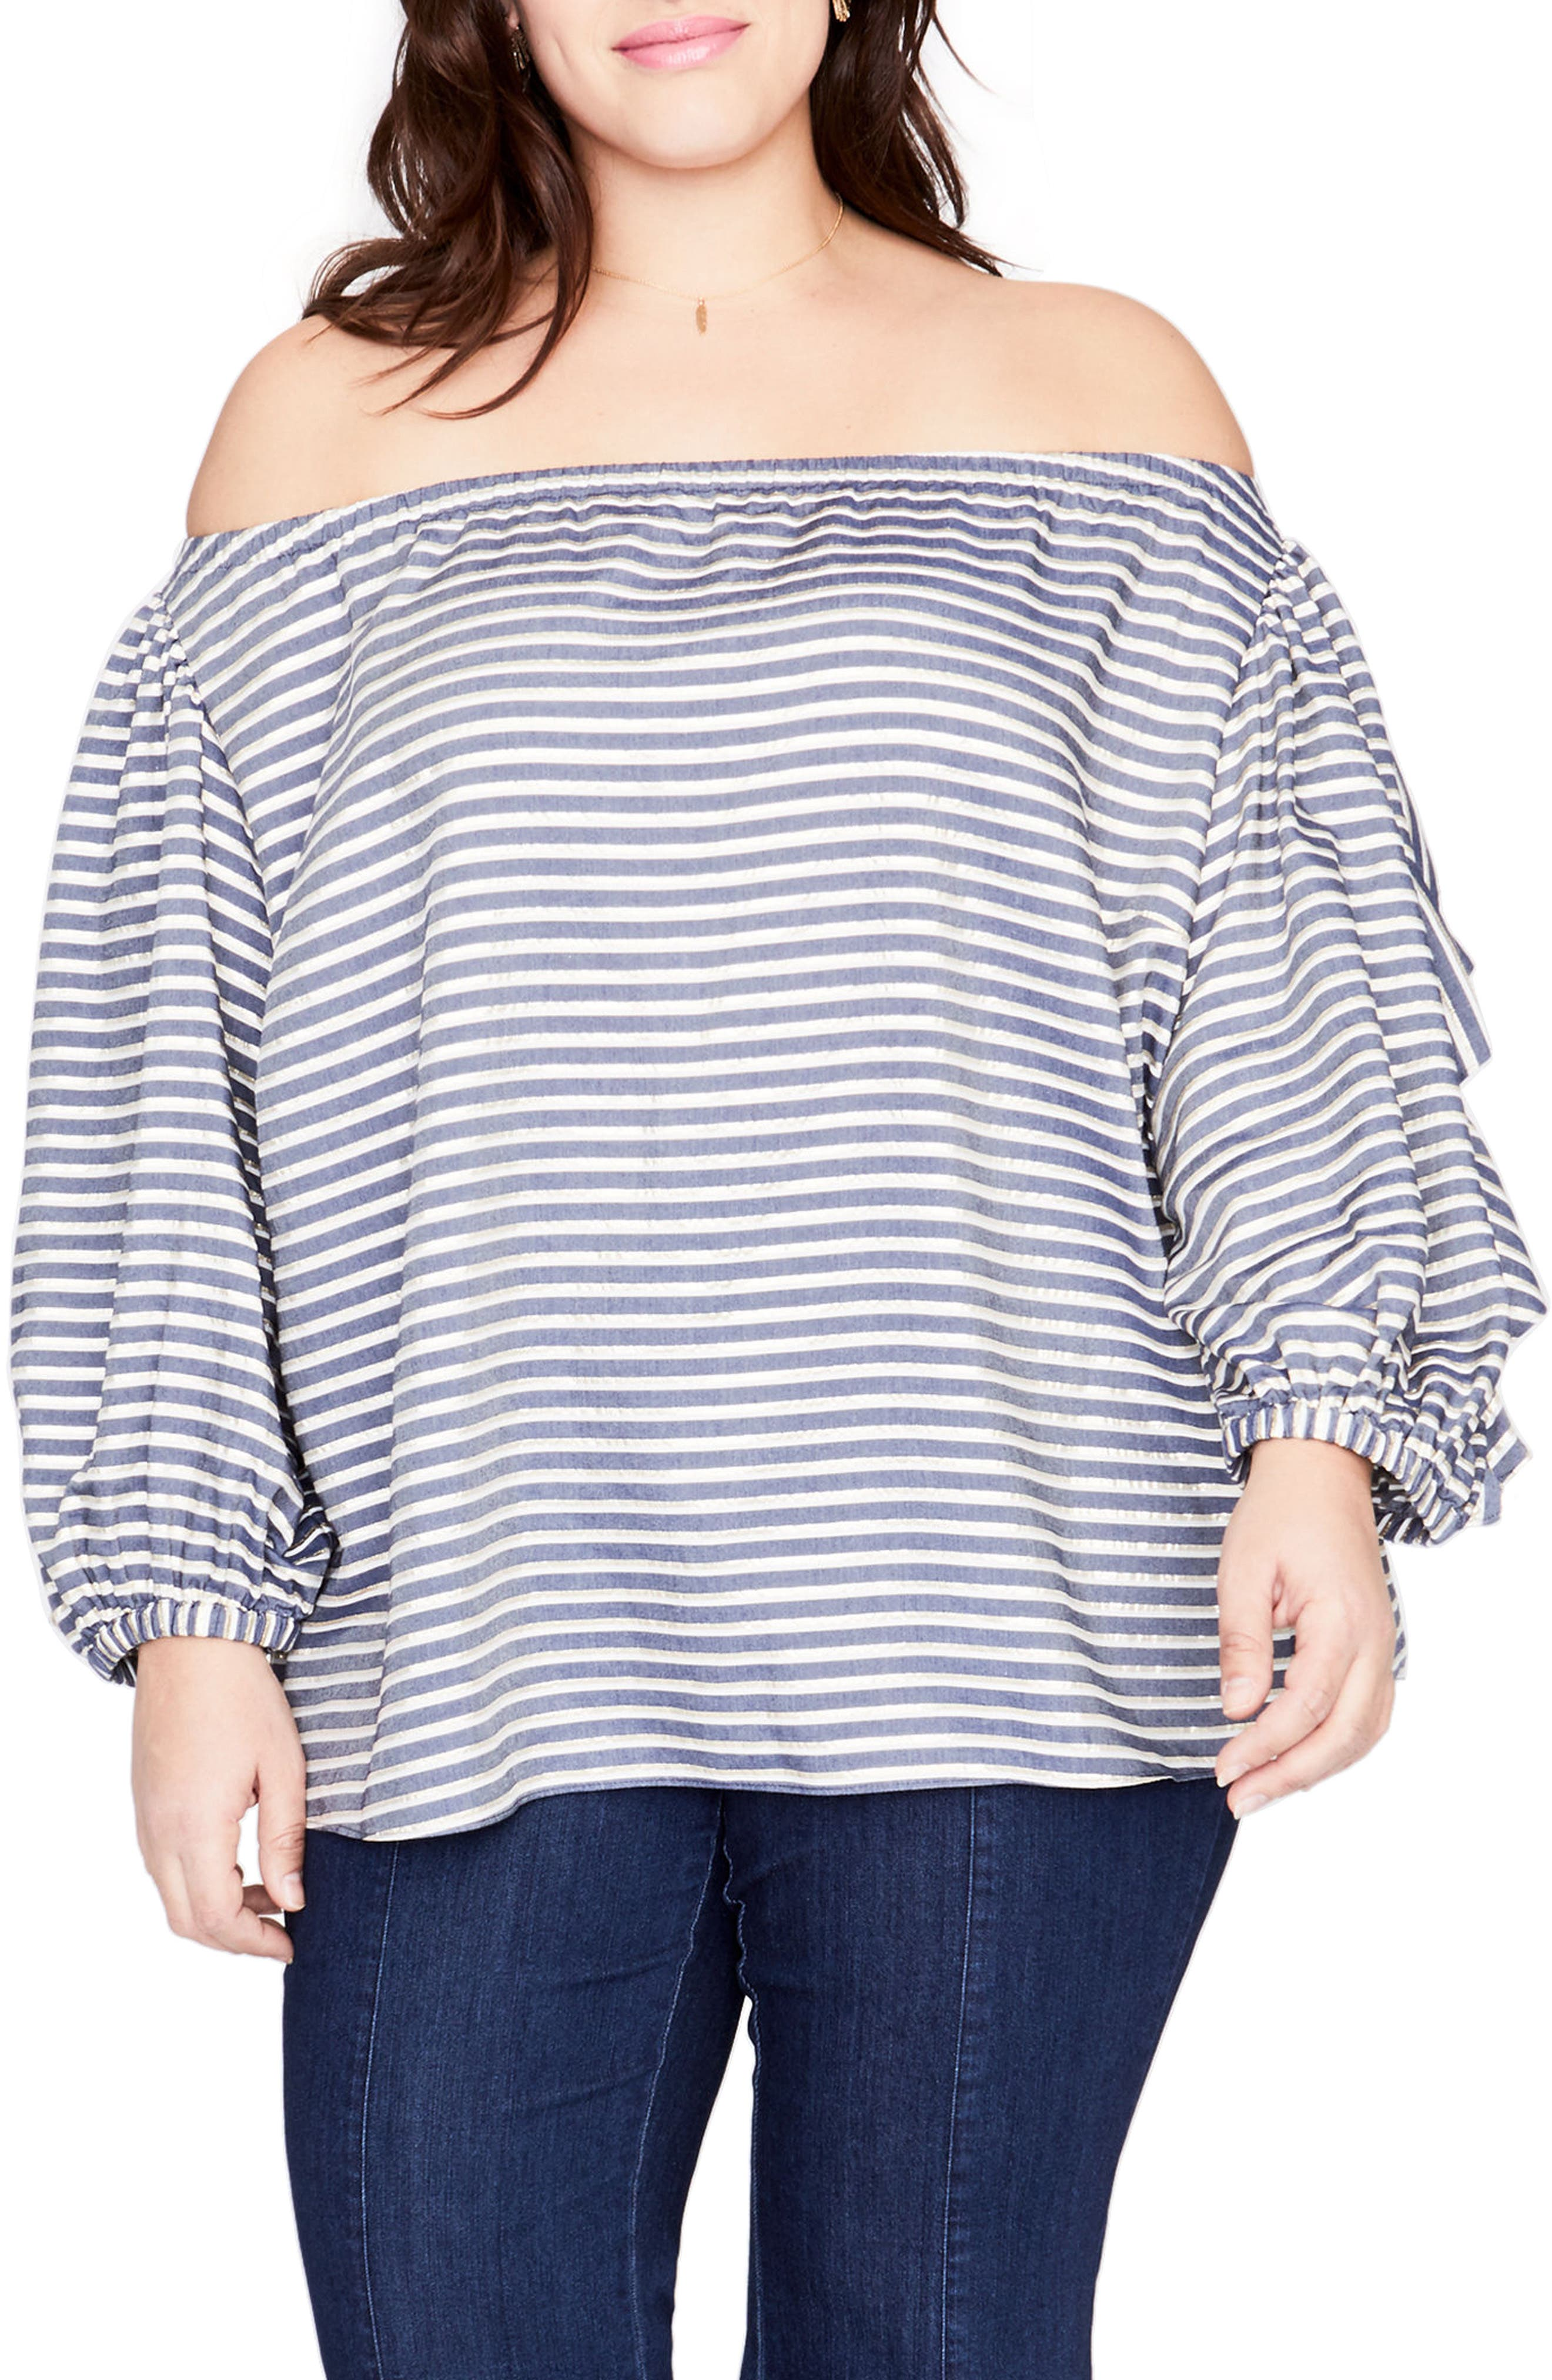 Ruffle Sleeve Stripe Off the Shoulder Top,                         Main,                         color, True Navy Combo